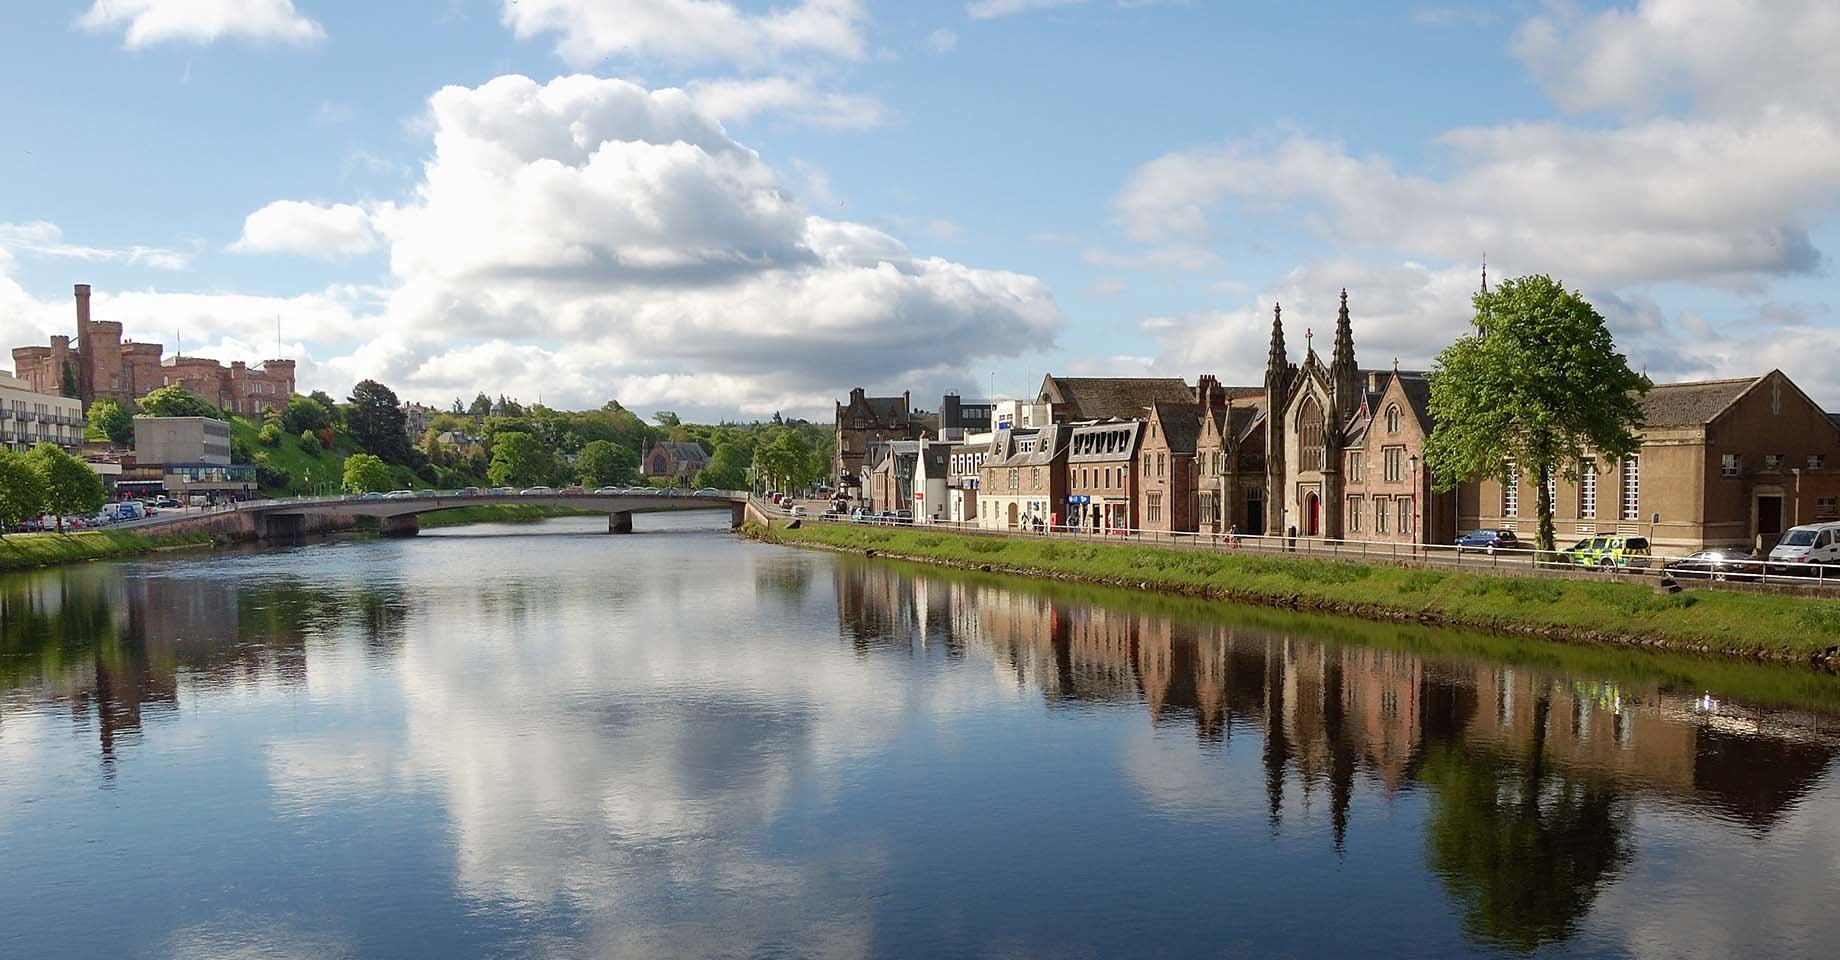 The city of Inverness on the River Ness